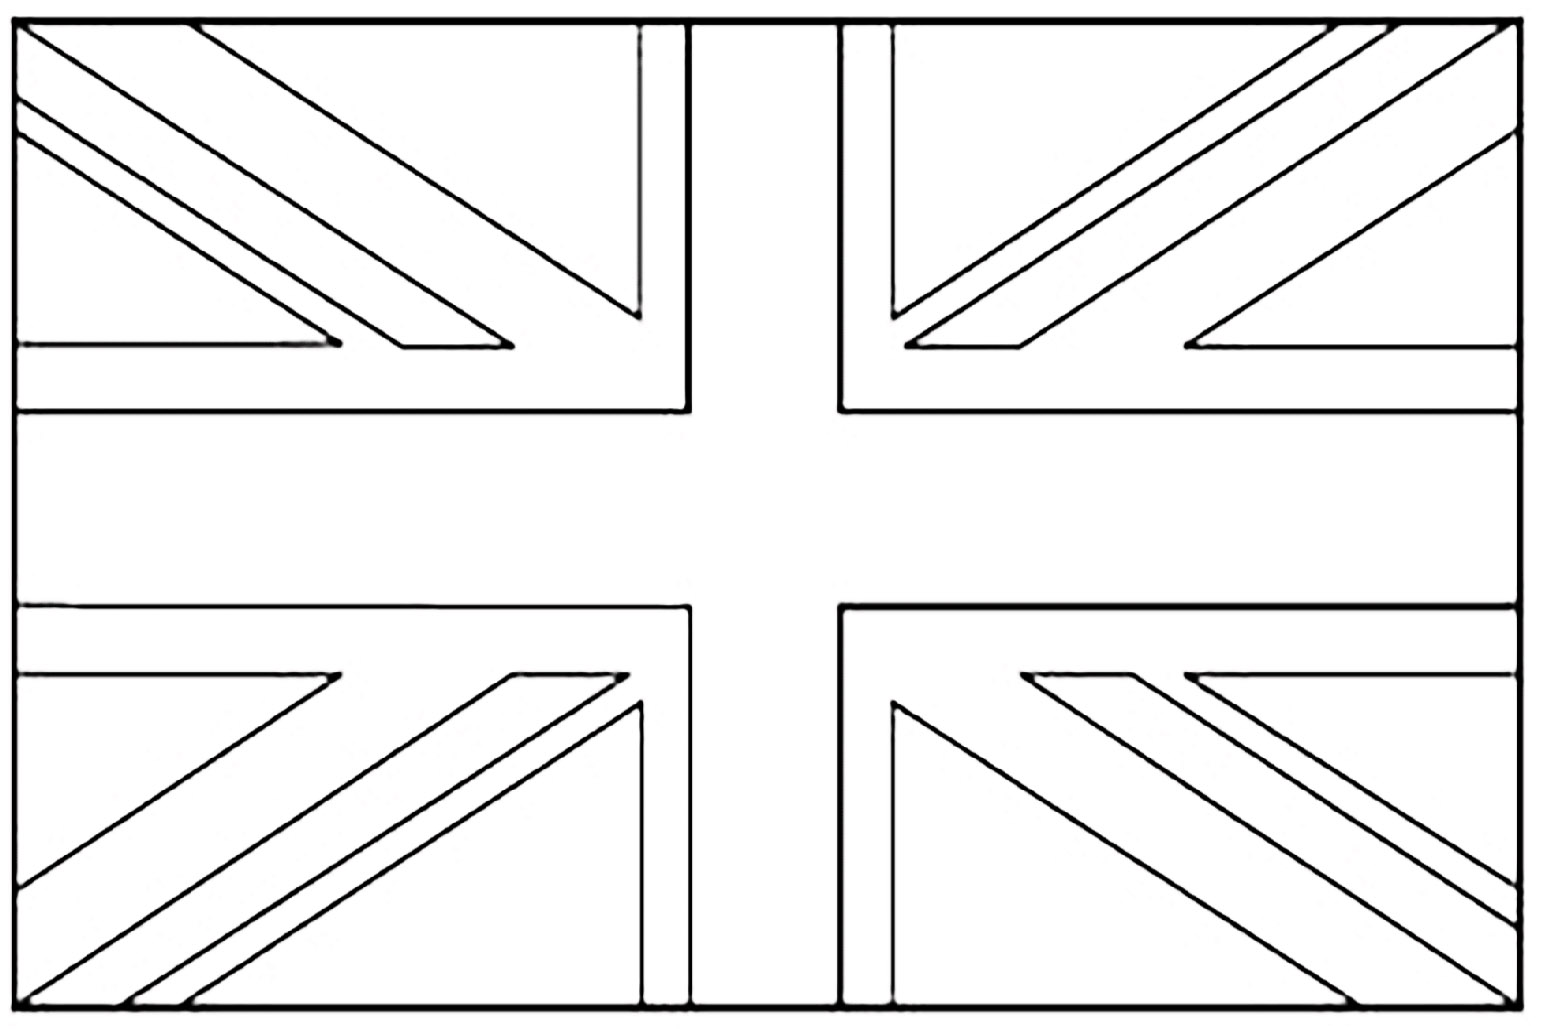 Coloring Pages Union Jack Coloring Page union jack coloring page futpal com european flag great britain az coloring